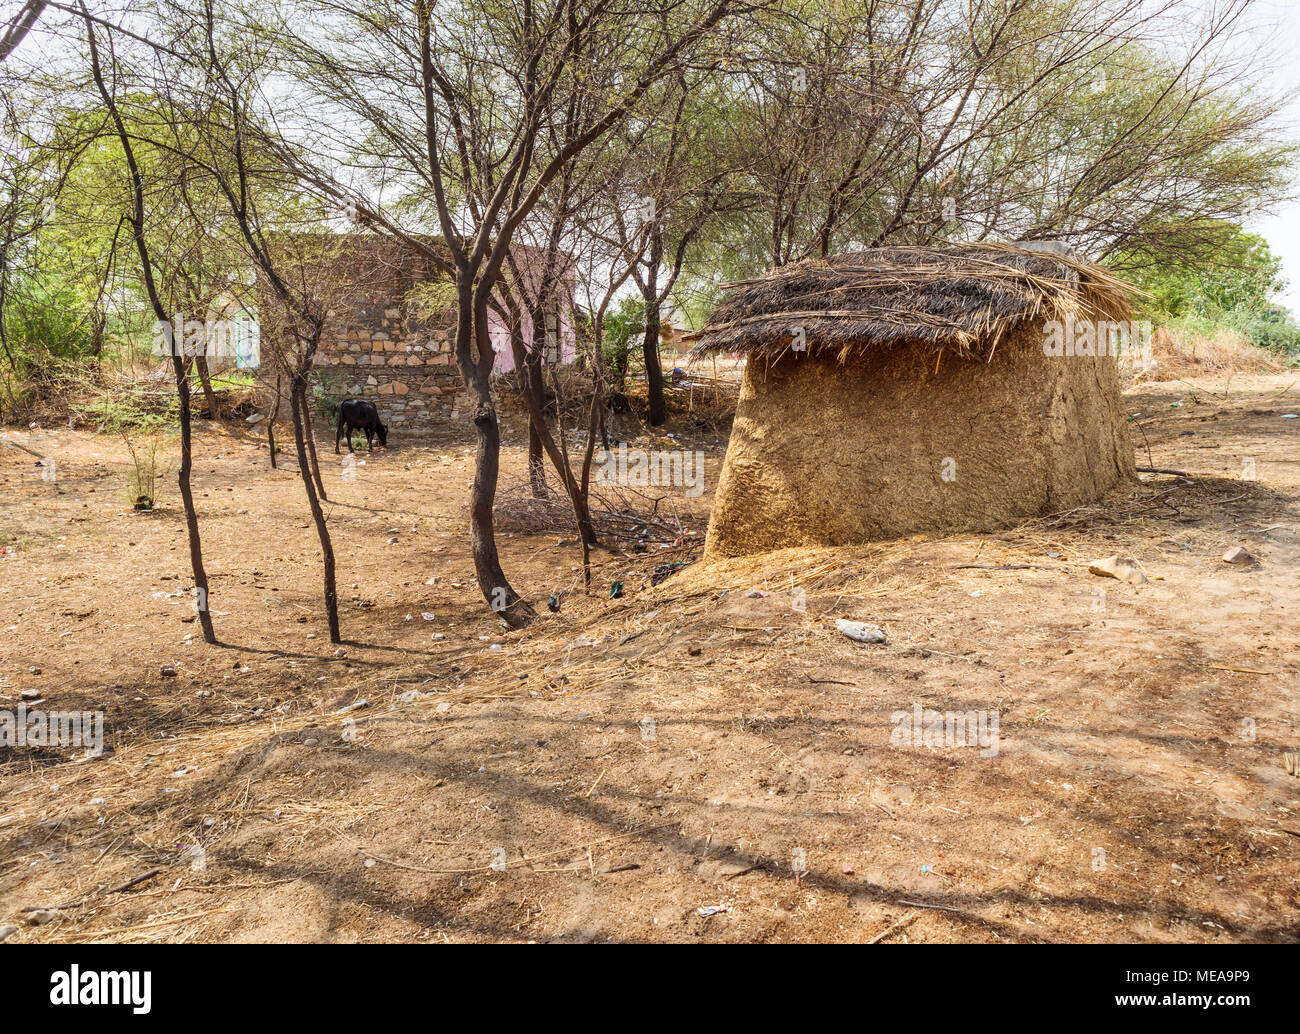 Traditional farming methods: view of typical roadside structure made of dried cow dung stored to be used for fuel, near Dausa, Rajasthan, north India - Stock Image